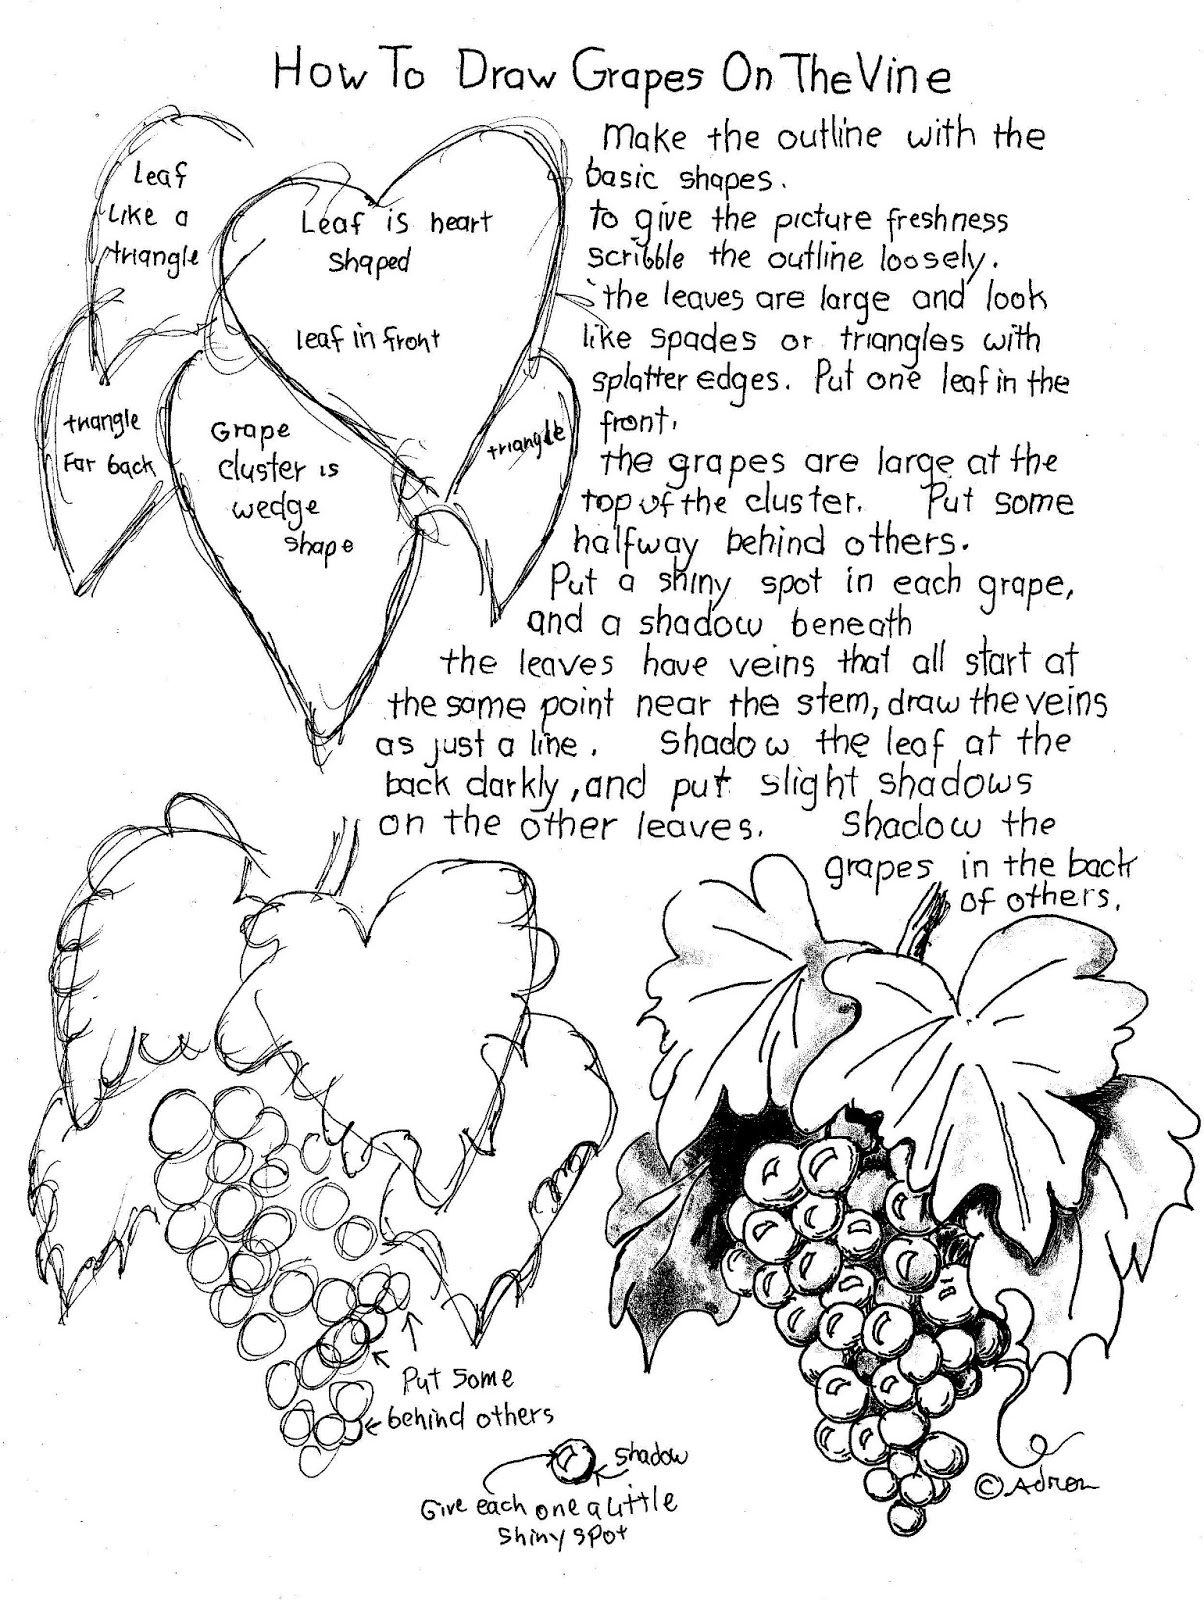 How To Draw Grapes On A Vine Printable Worksheet